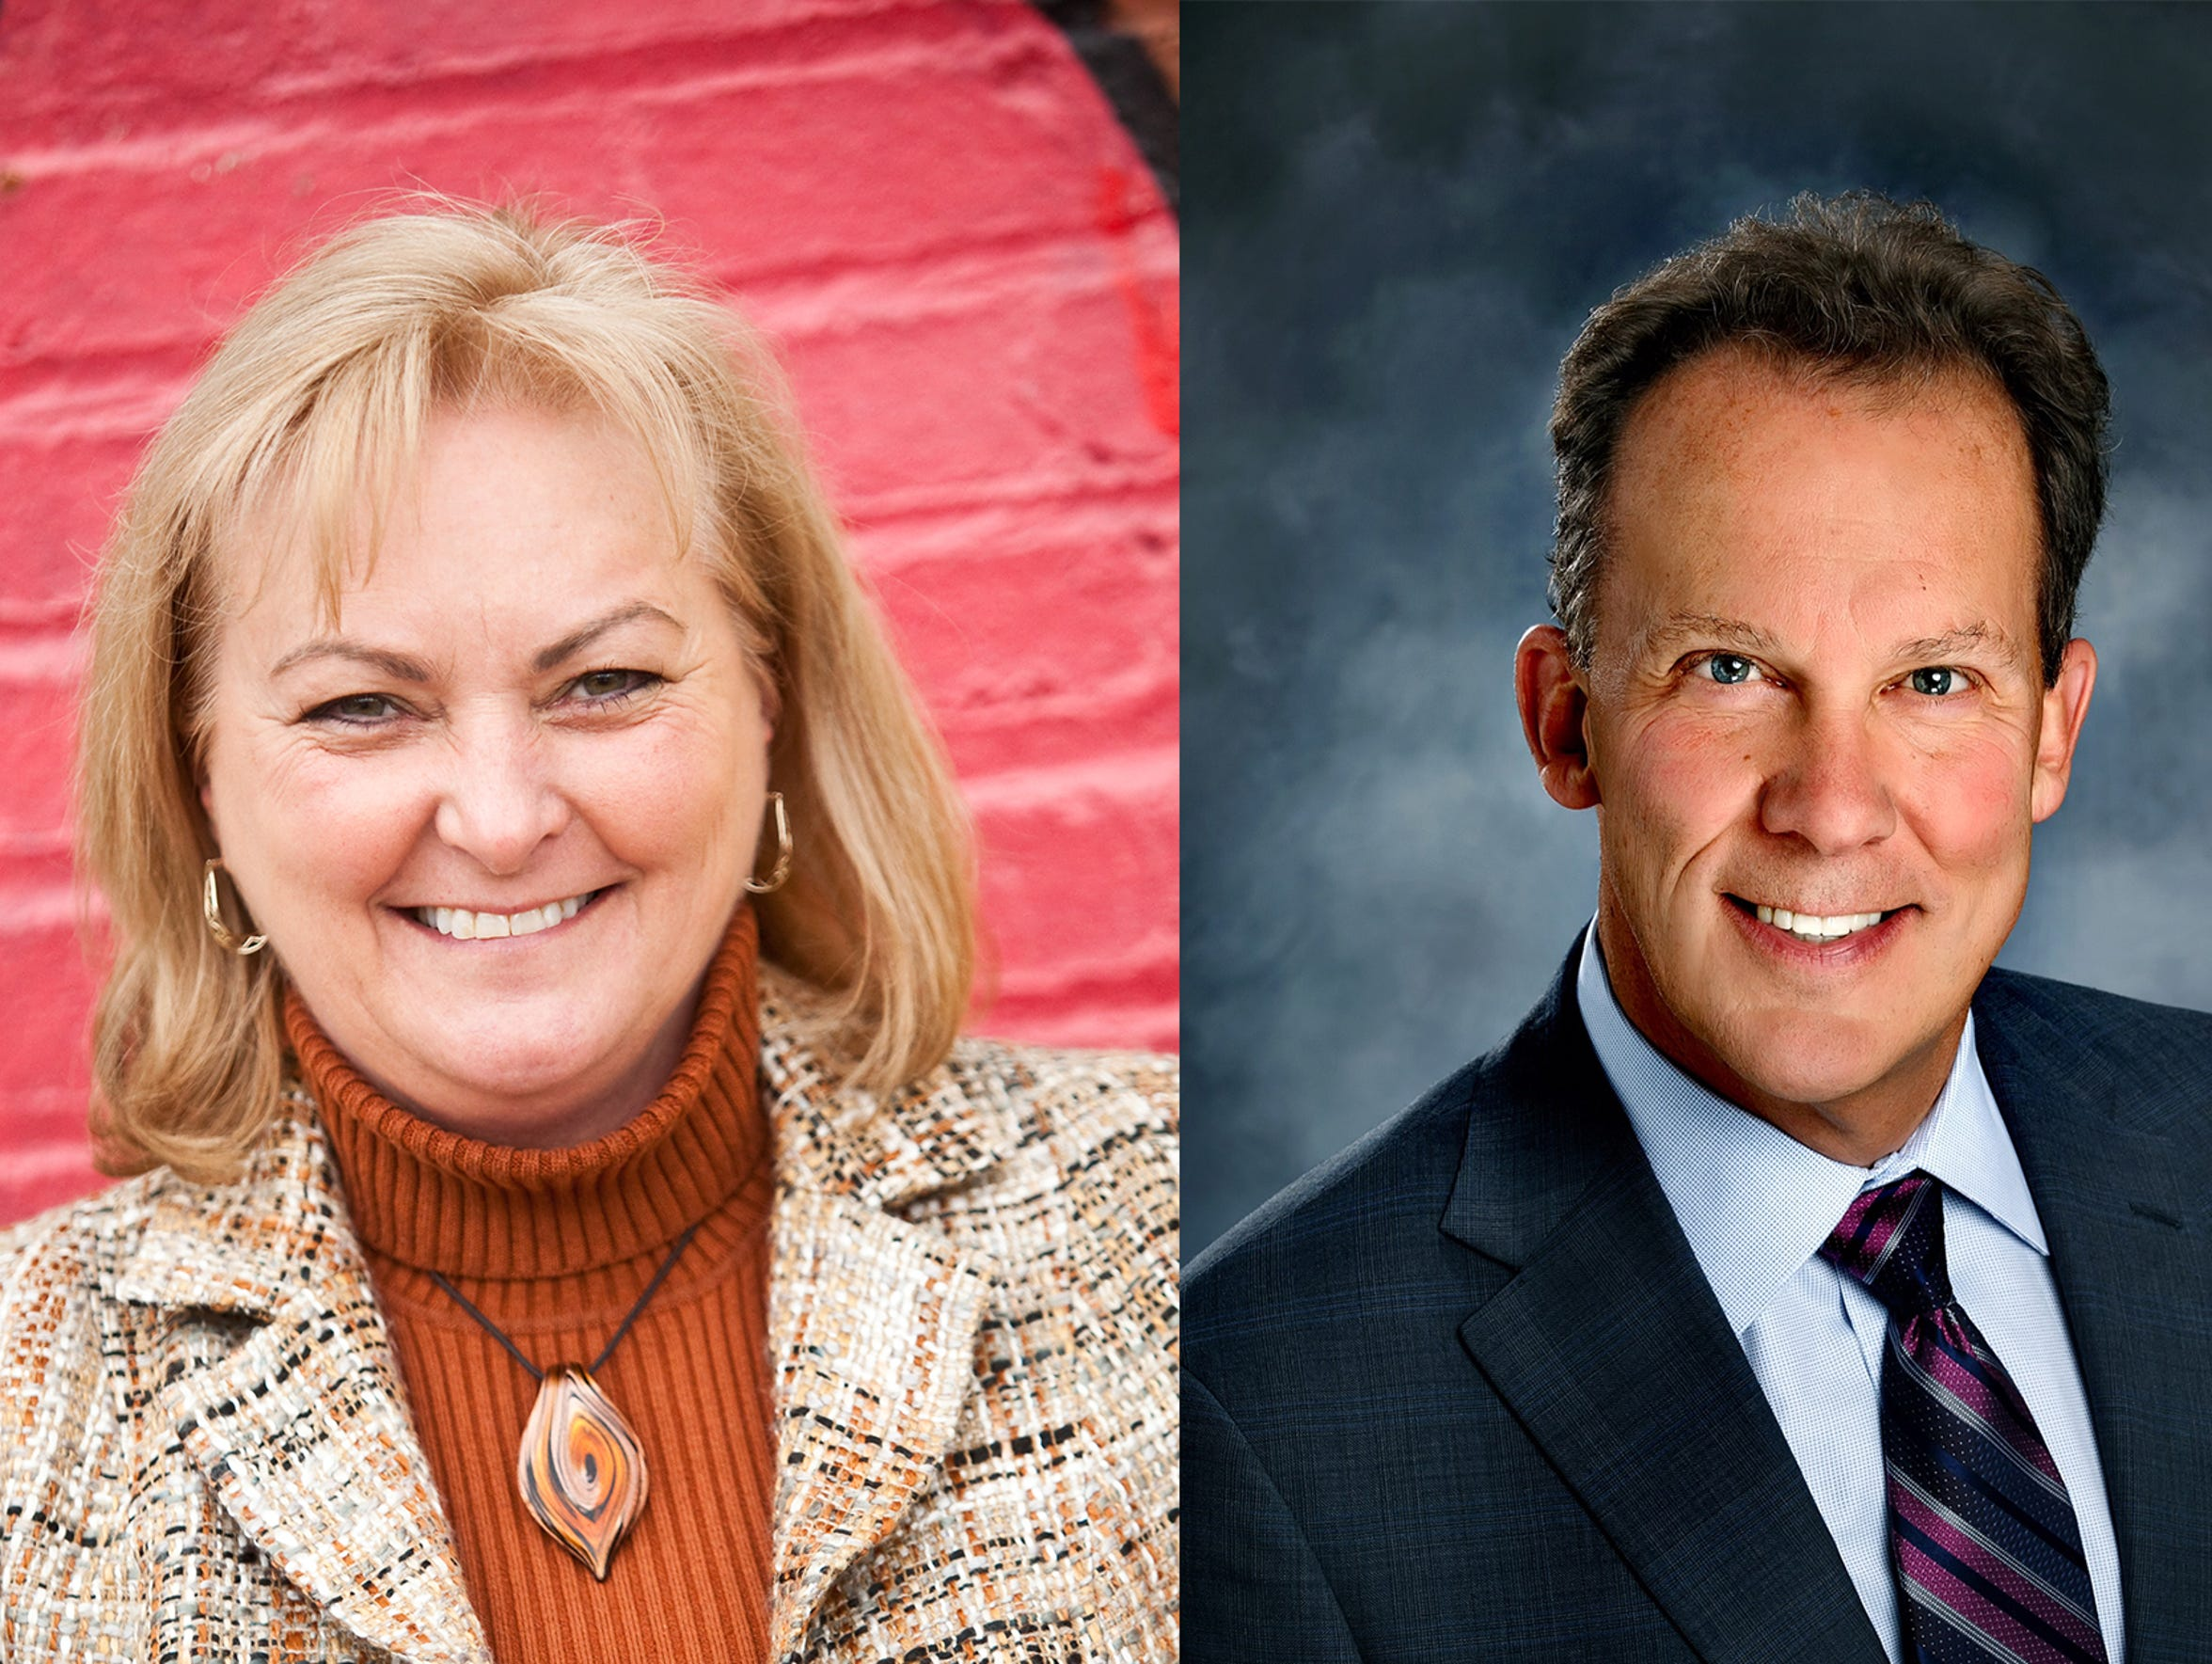 Helen Gunther and Dr. Tom Prater are running for City